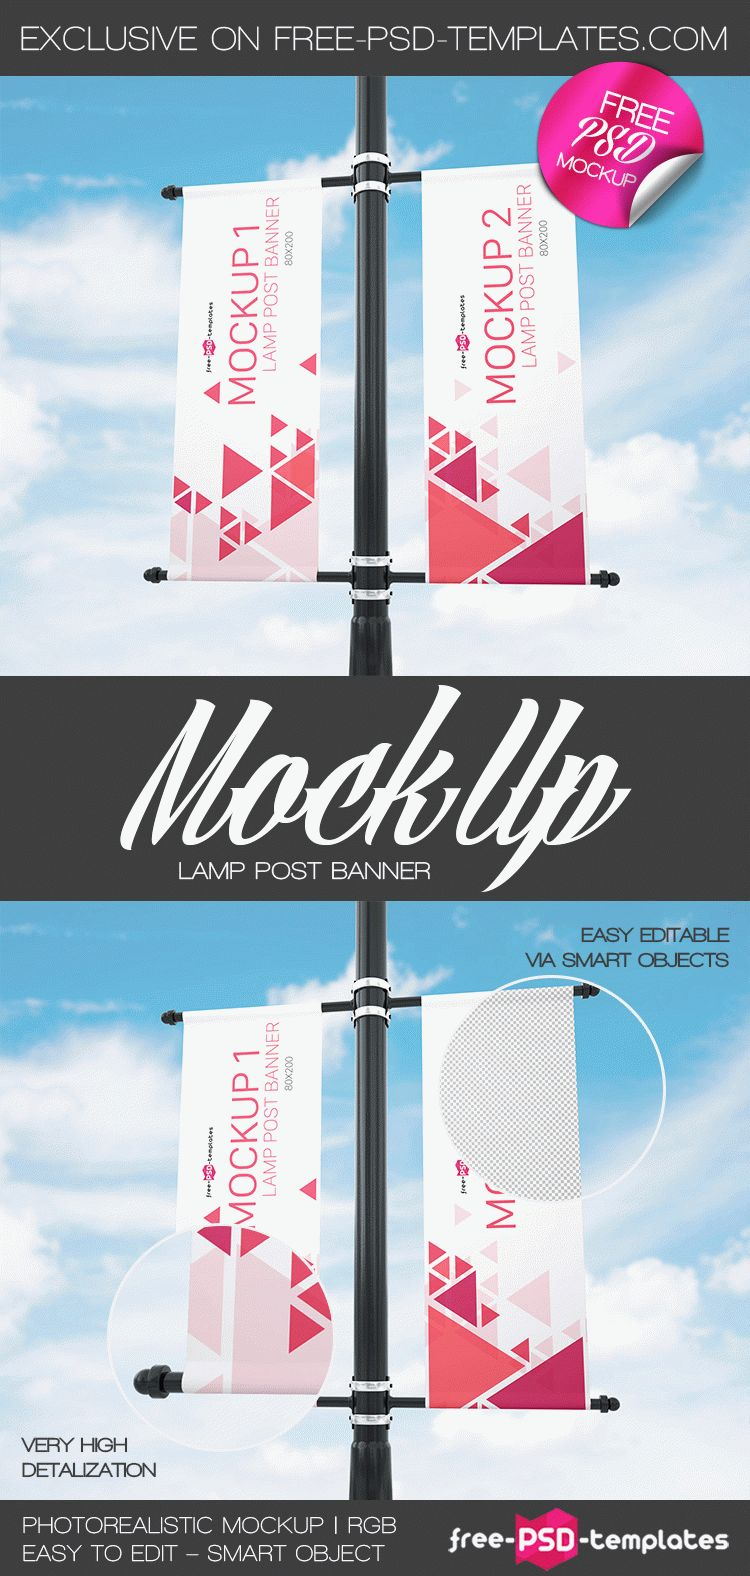 Lamp Mock In Free PsdTemplates Up Post Banner nP8OvNym0w